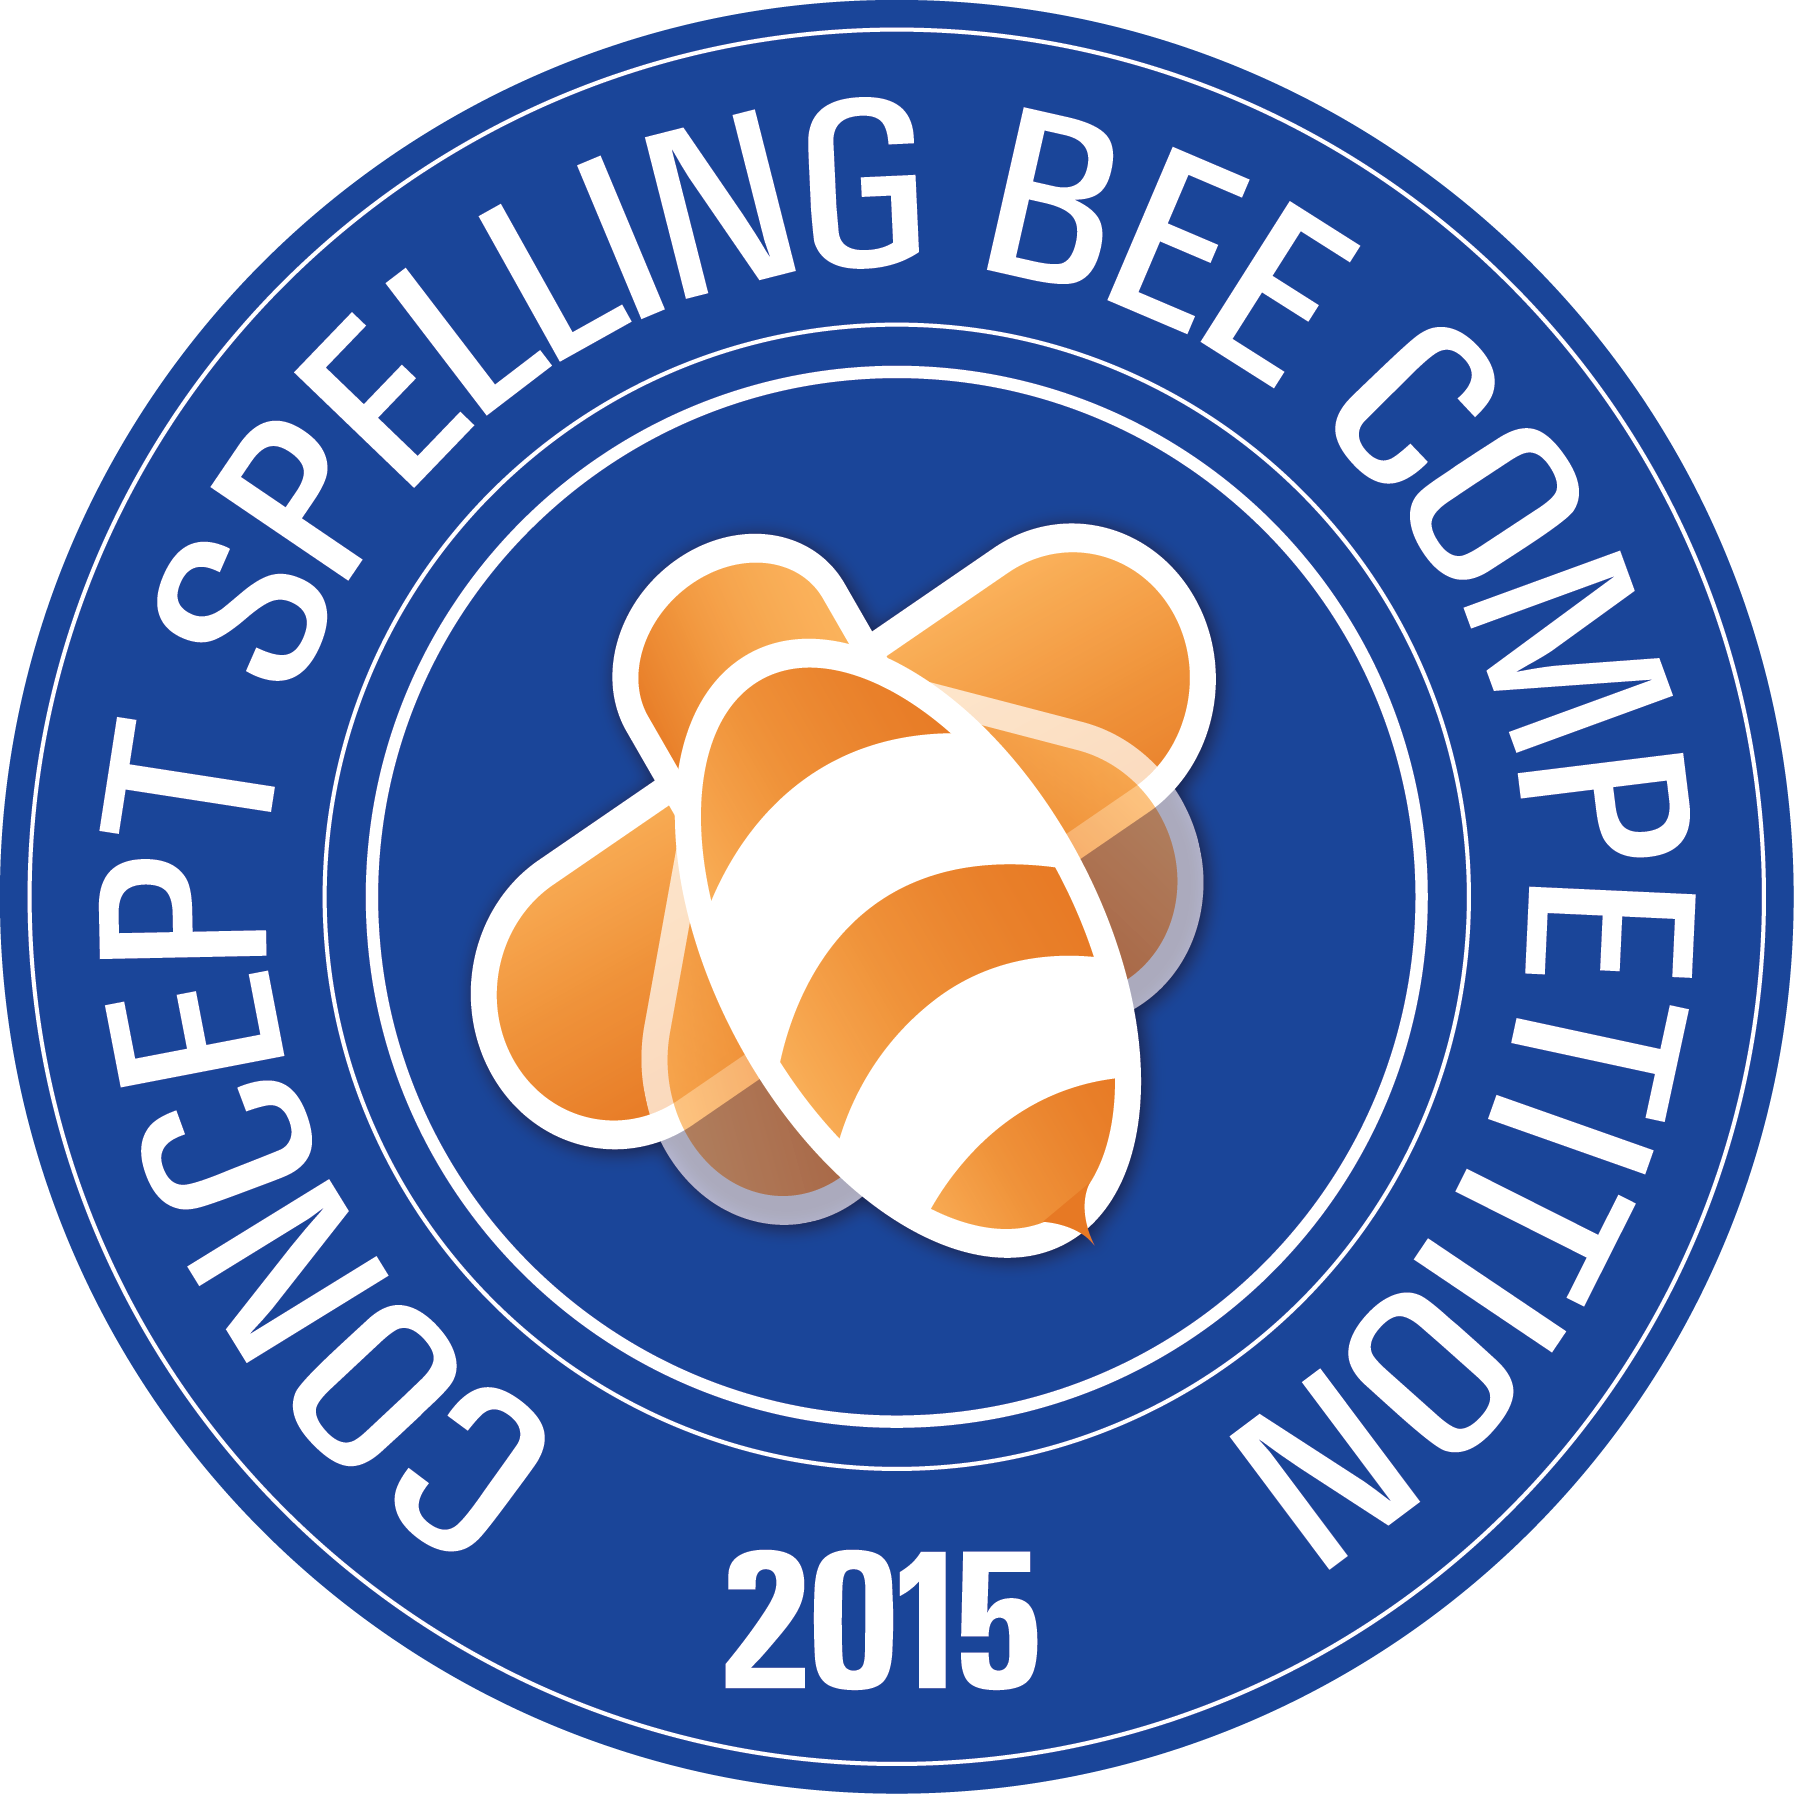 how to prepare for spelling bee